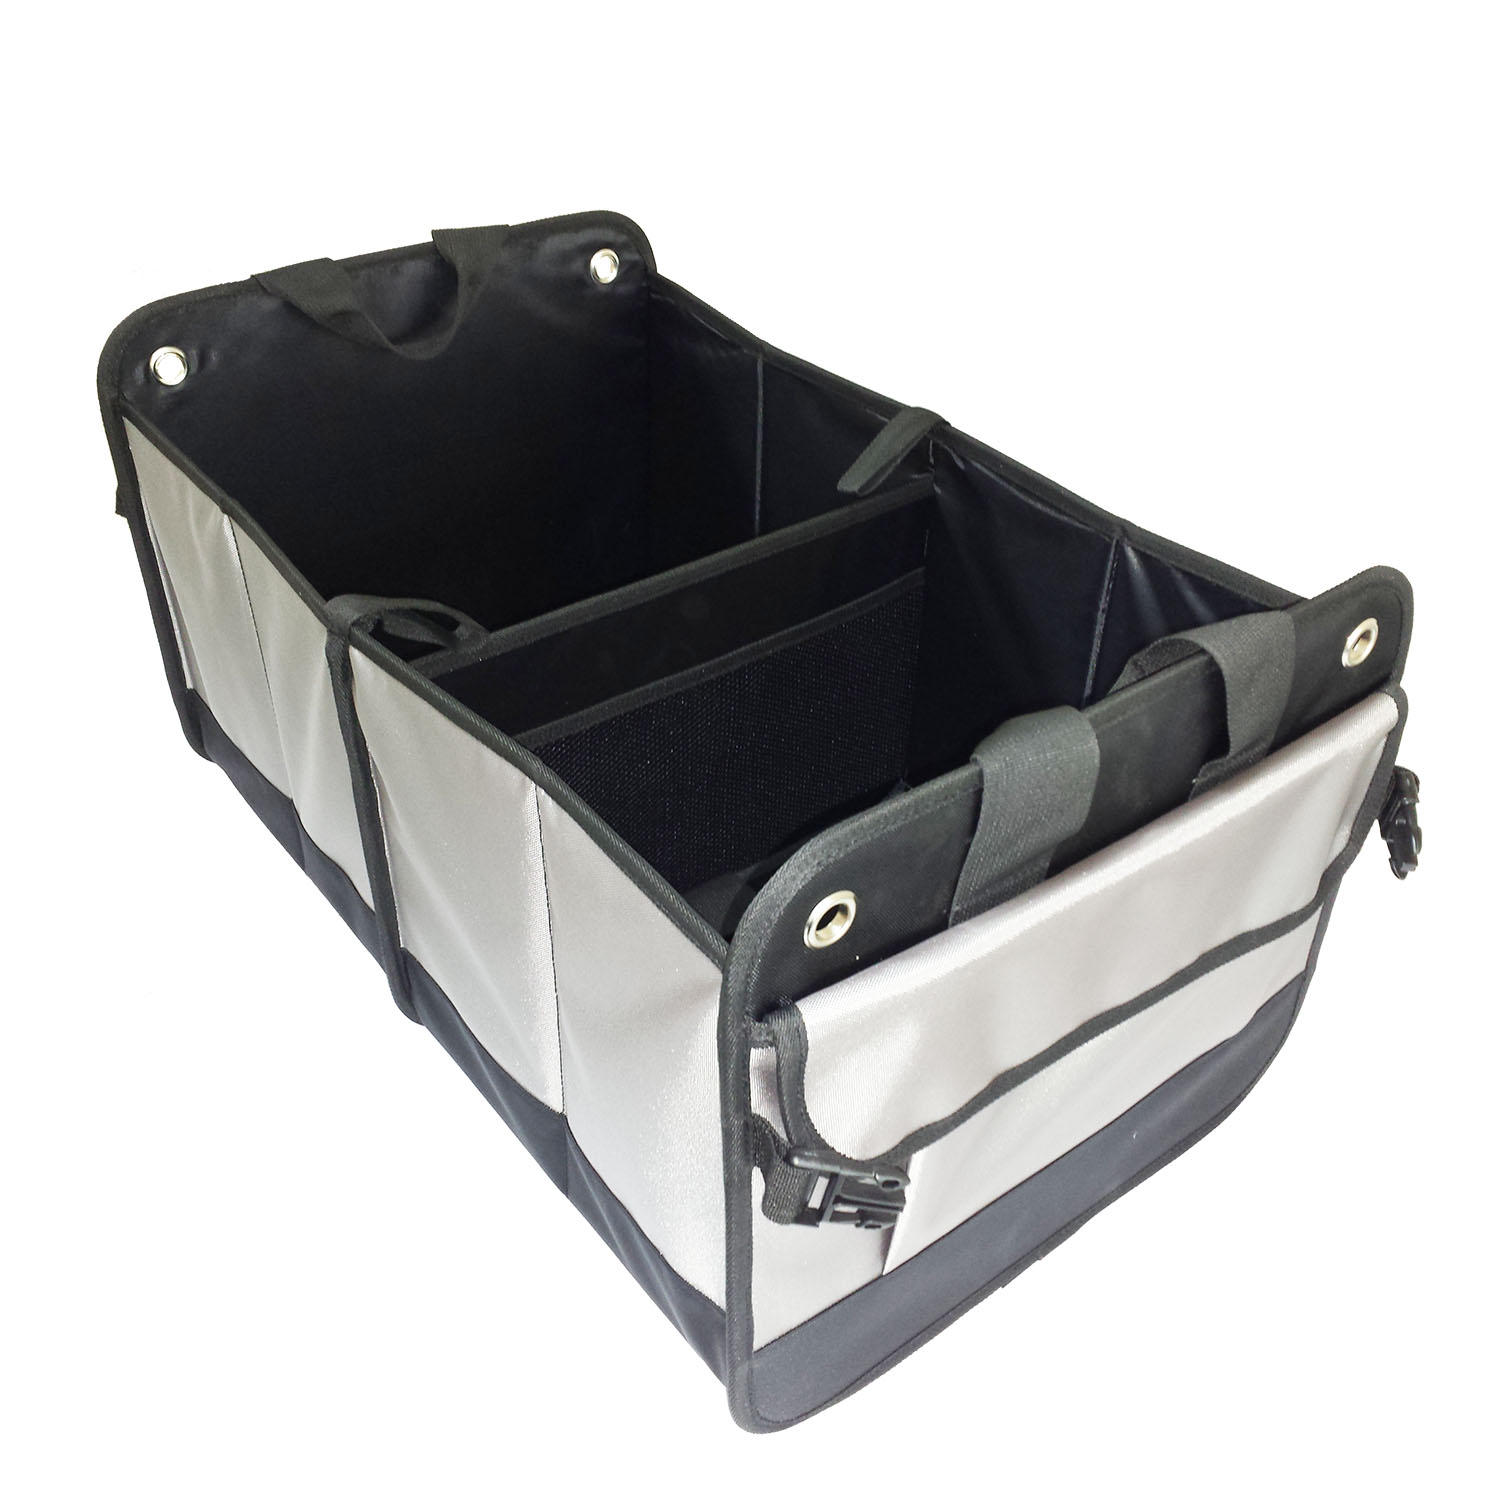 Trunk Organizer For Car Suv Minivan And Truck Super Sturdy And